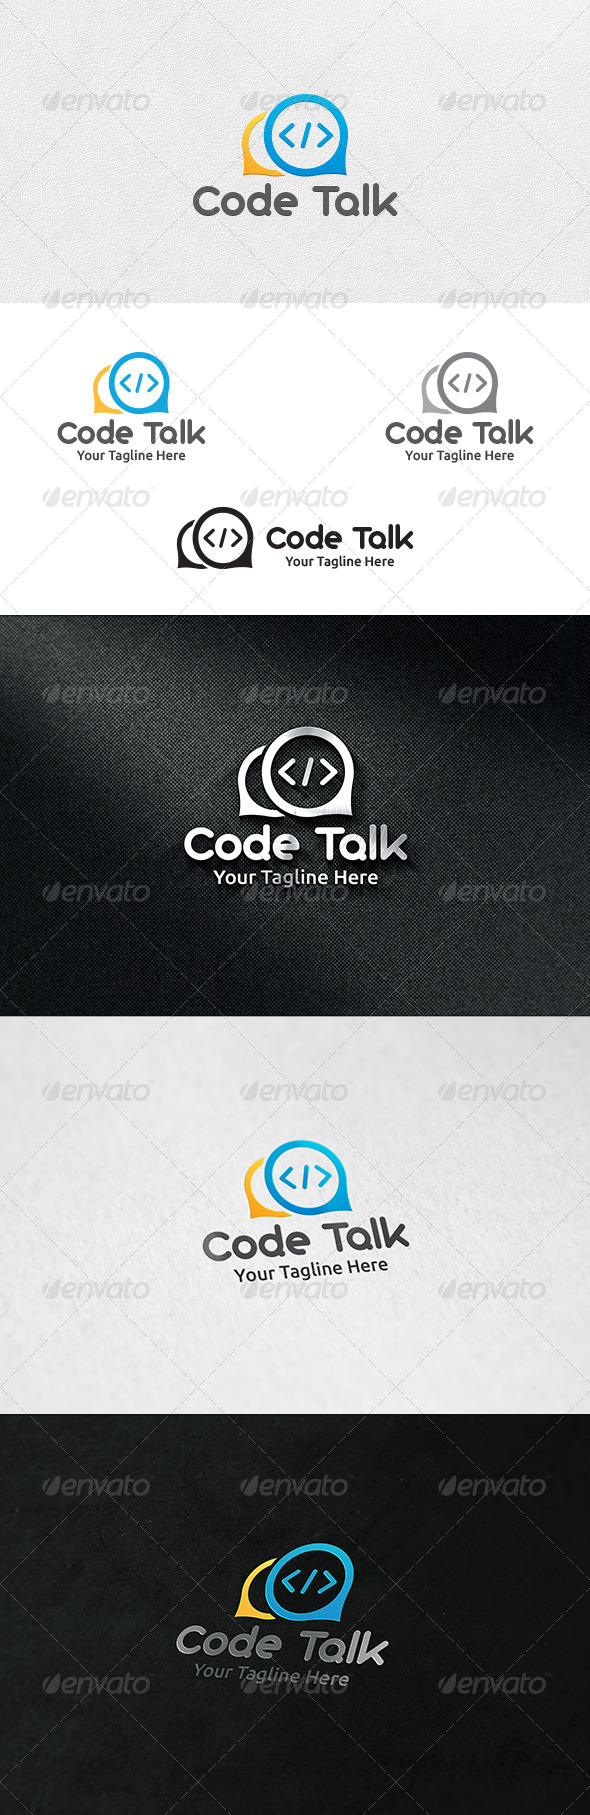 Code Talk Logo Template